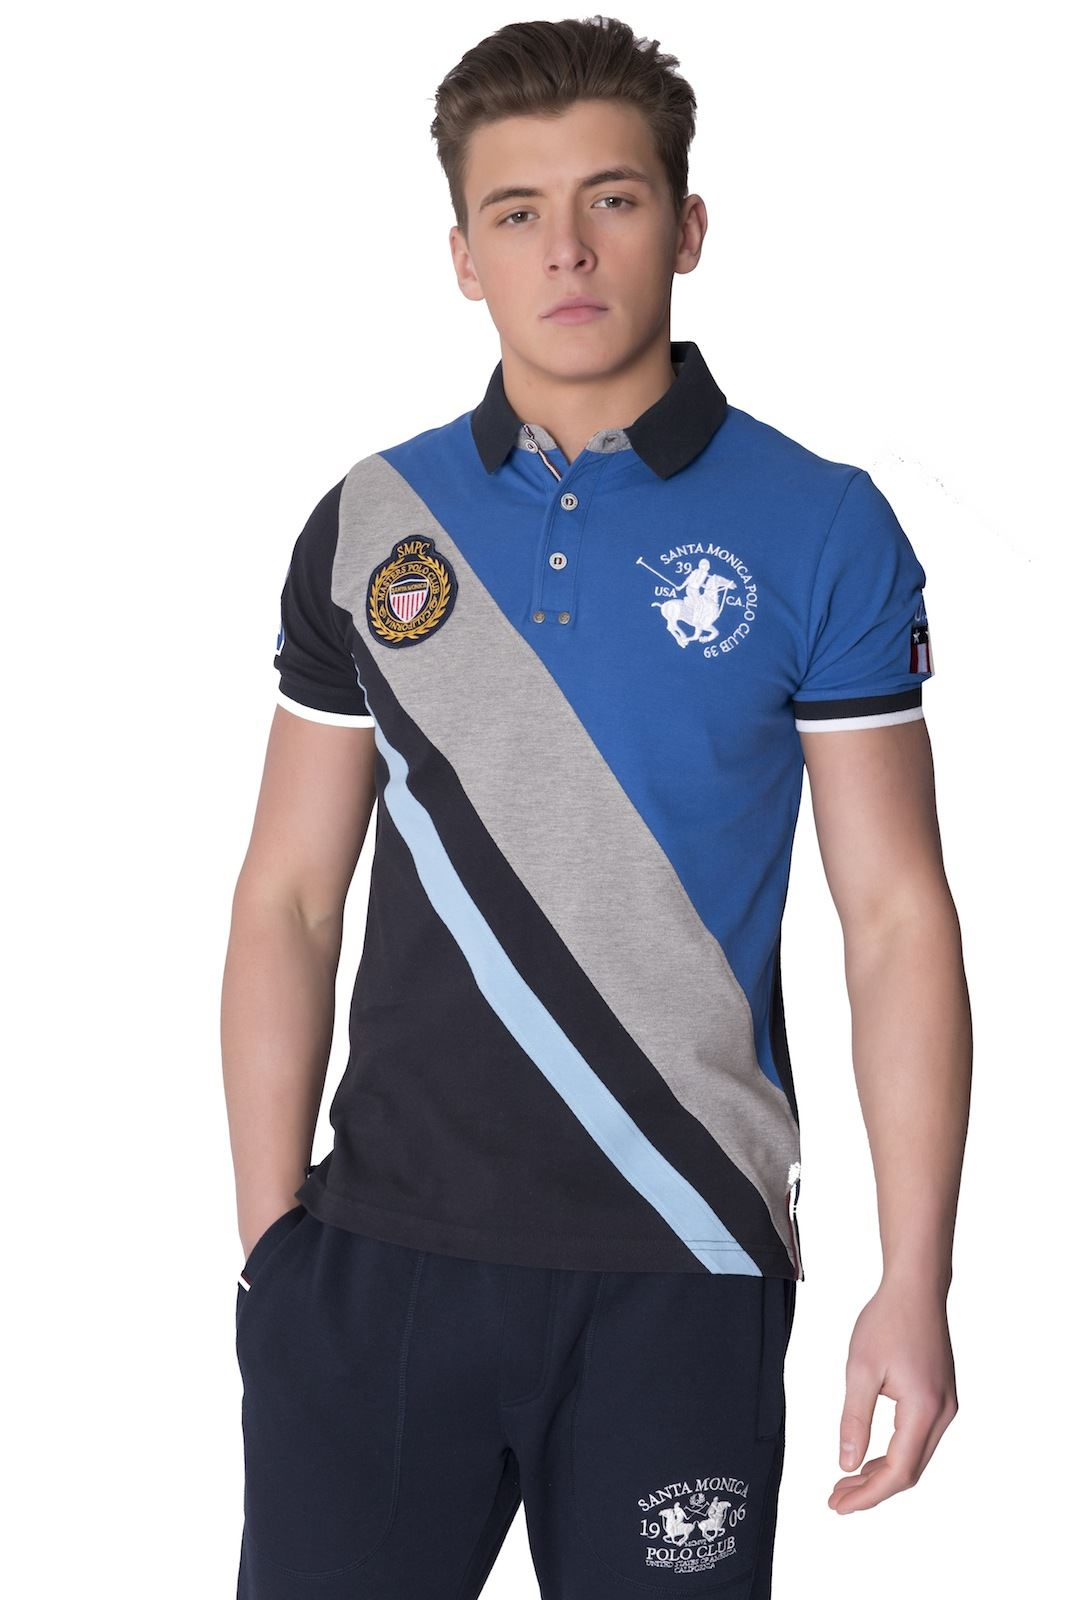 Santa monica polo club mens polo shirt short sleeve cotton for Branded polo t shirts